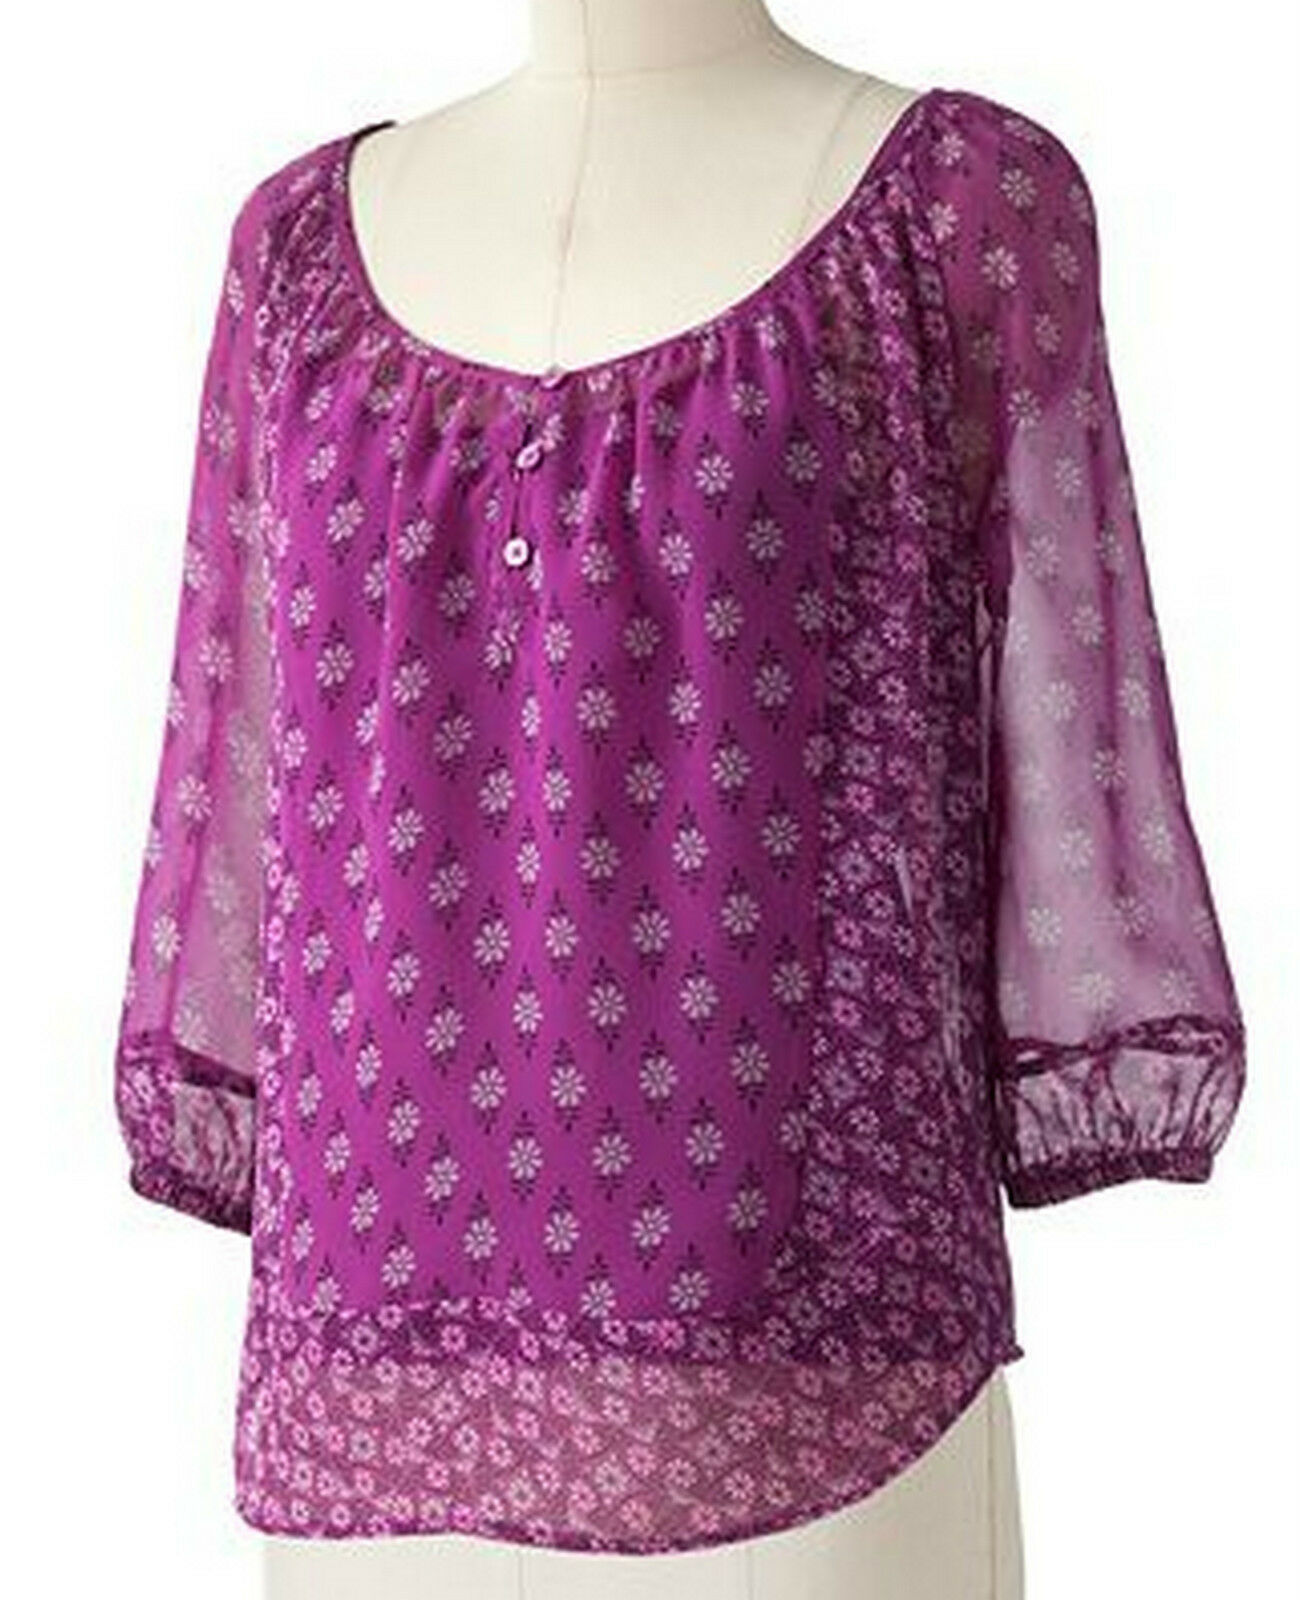 Primary image for Elle Purple Floral Mosaic Peasant Scoop Neck Blouse Cami Top Set XS 2